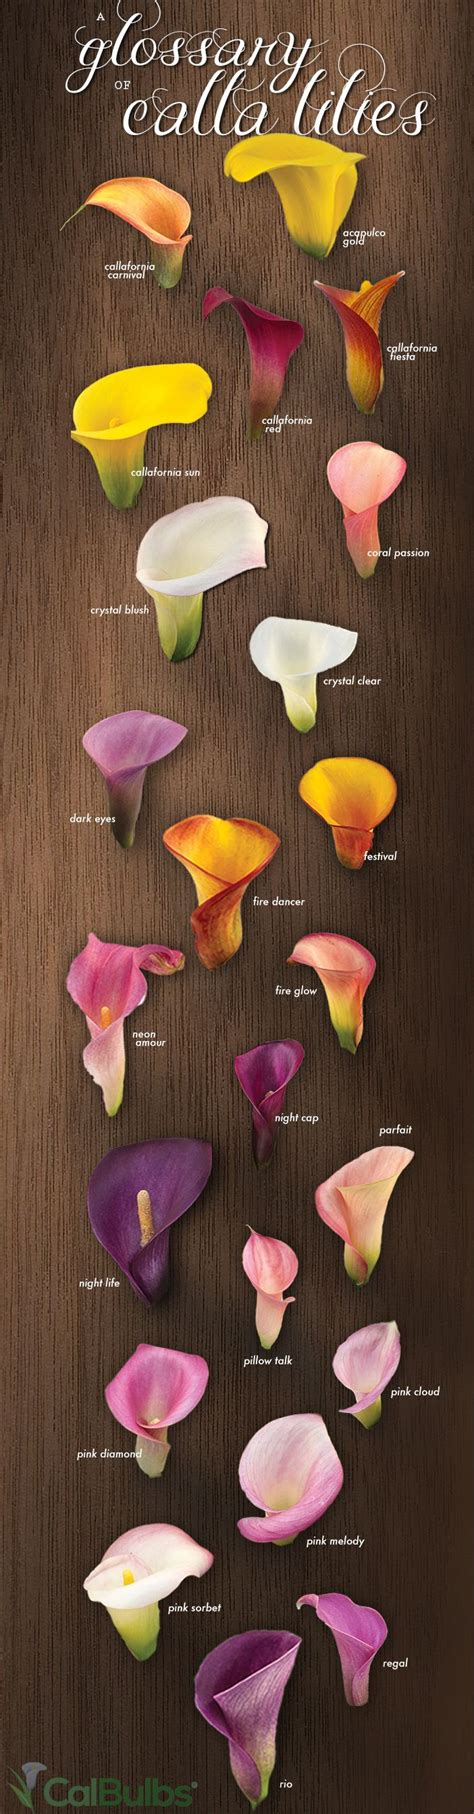 calla lilies colors best 25 calla lilies ideas on calla lillies